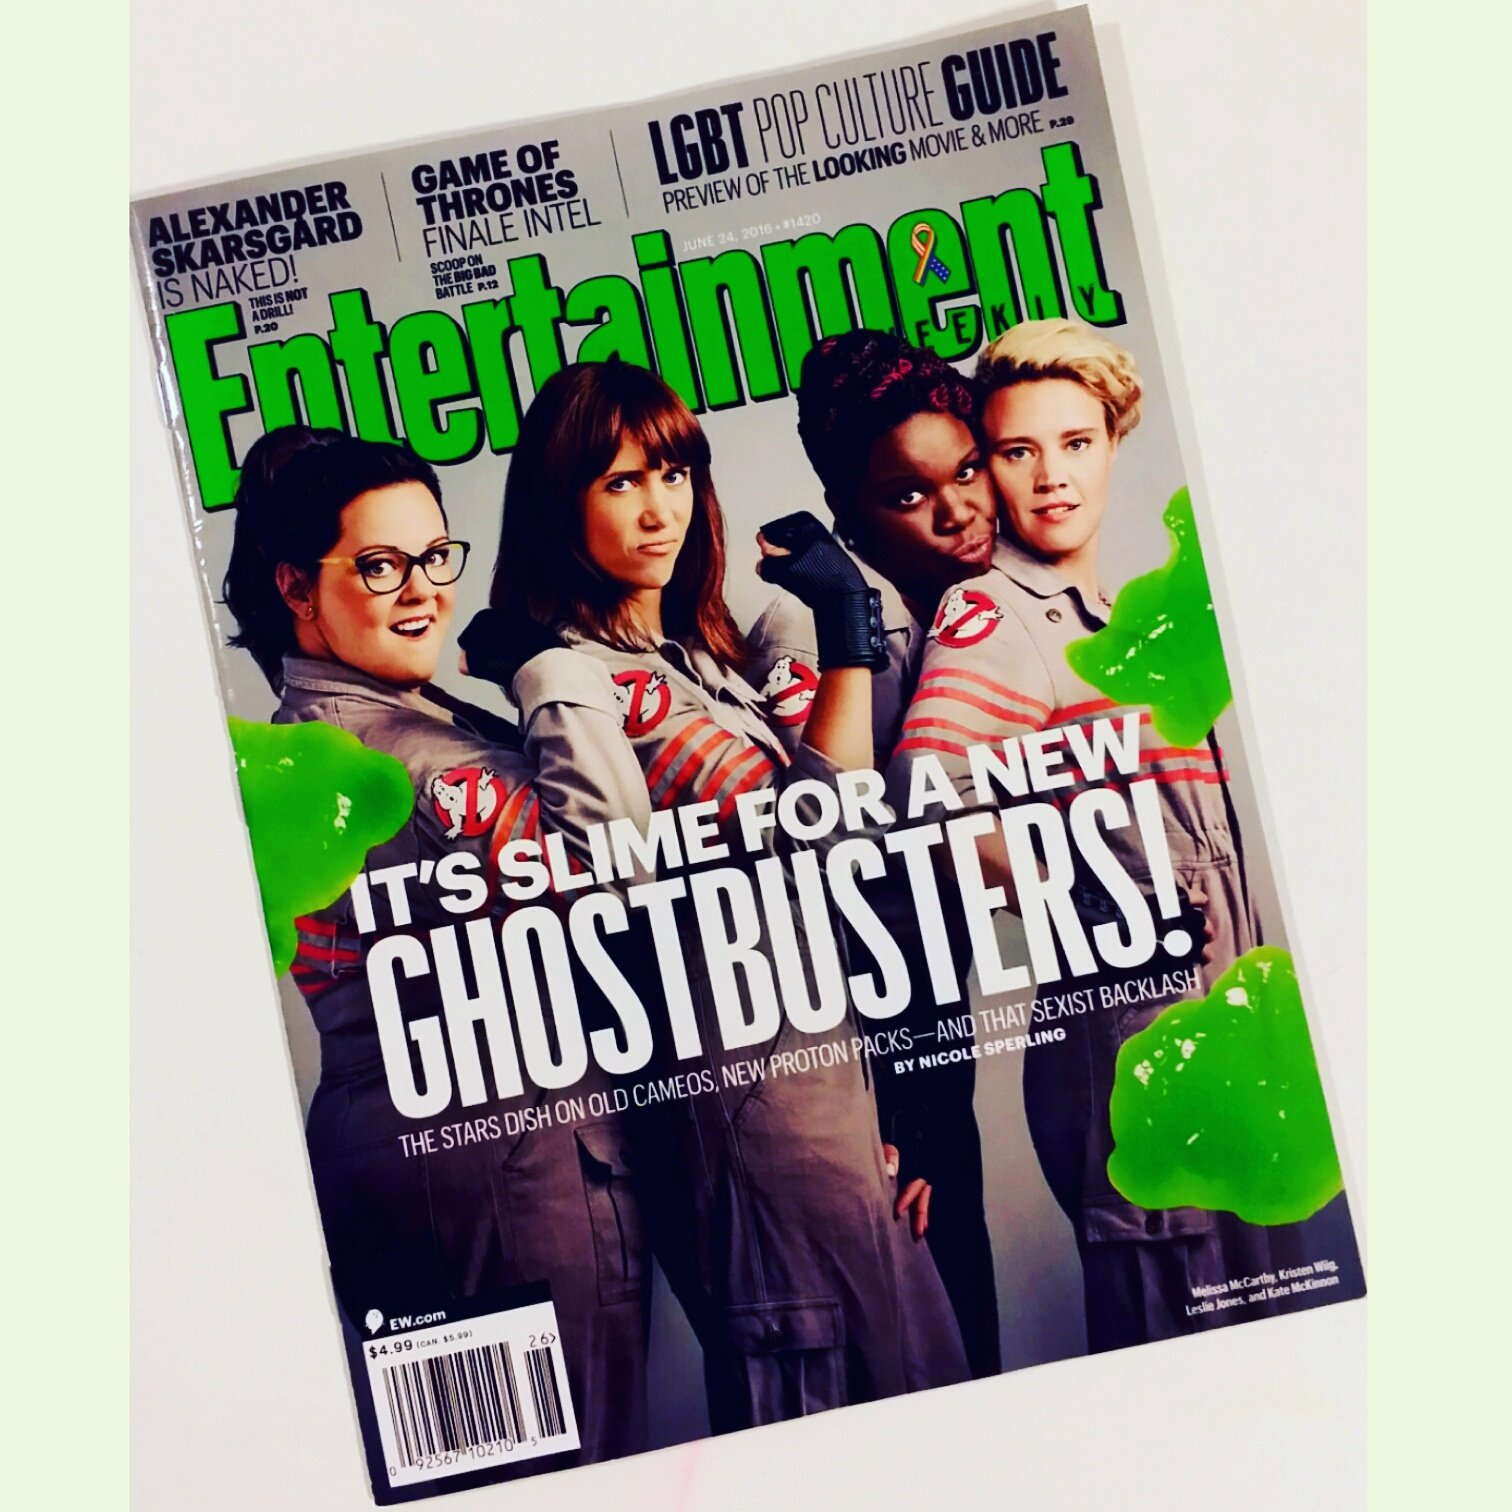 Entertainment Weekly 24 June, 2016 - Ghosbusters 2016